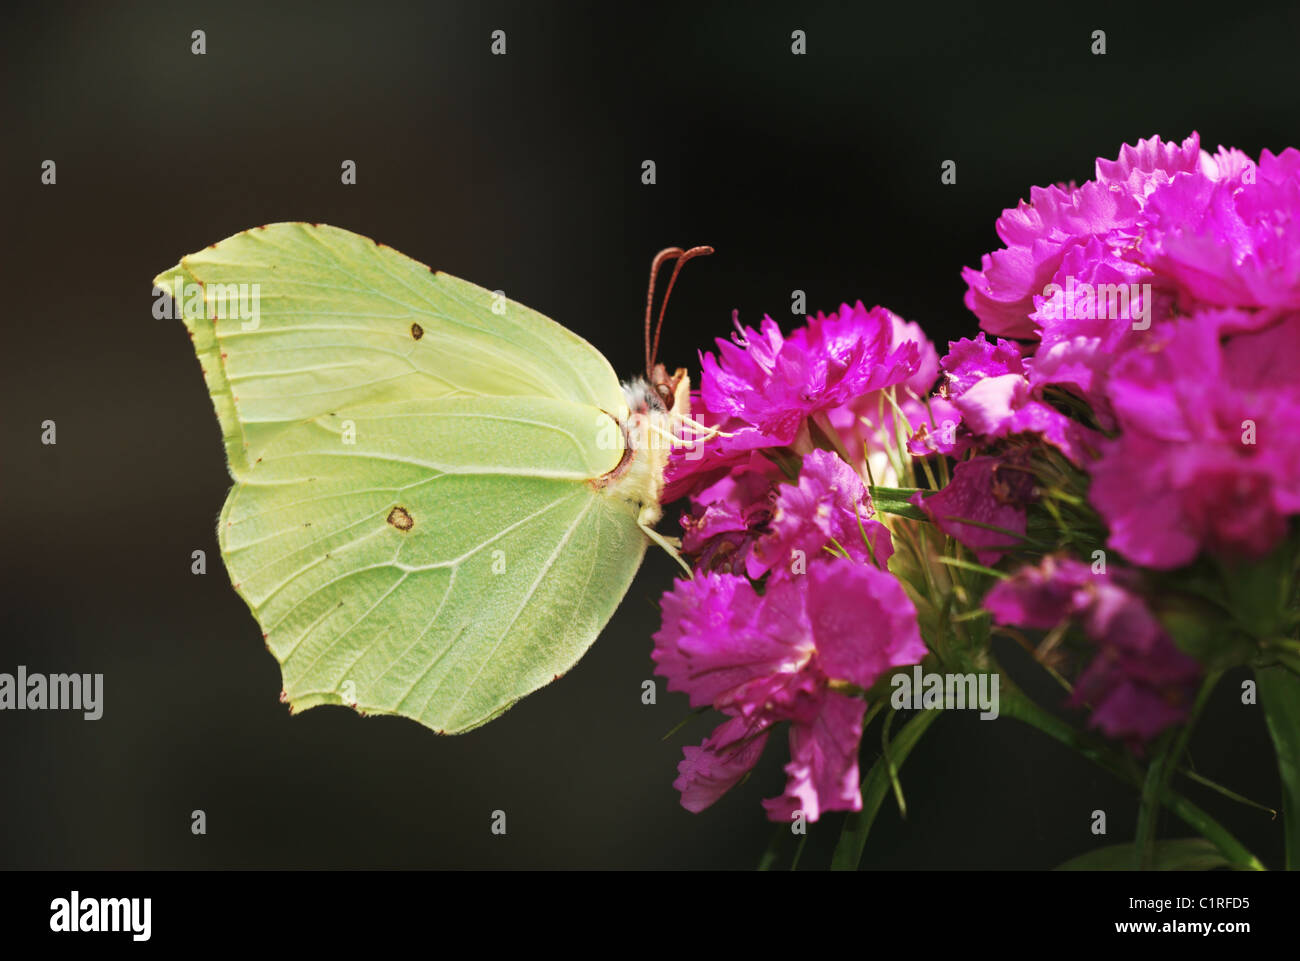 Green Brimstone butterfly on bright pink sweet williams flowers - Stock Image